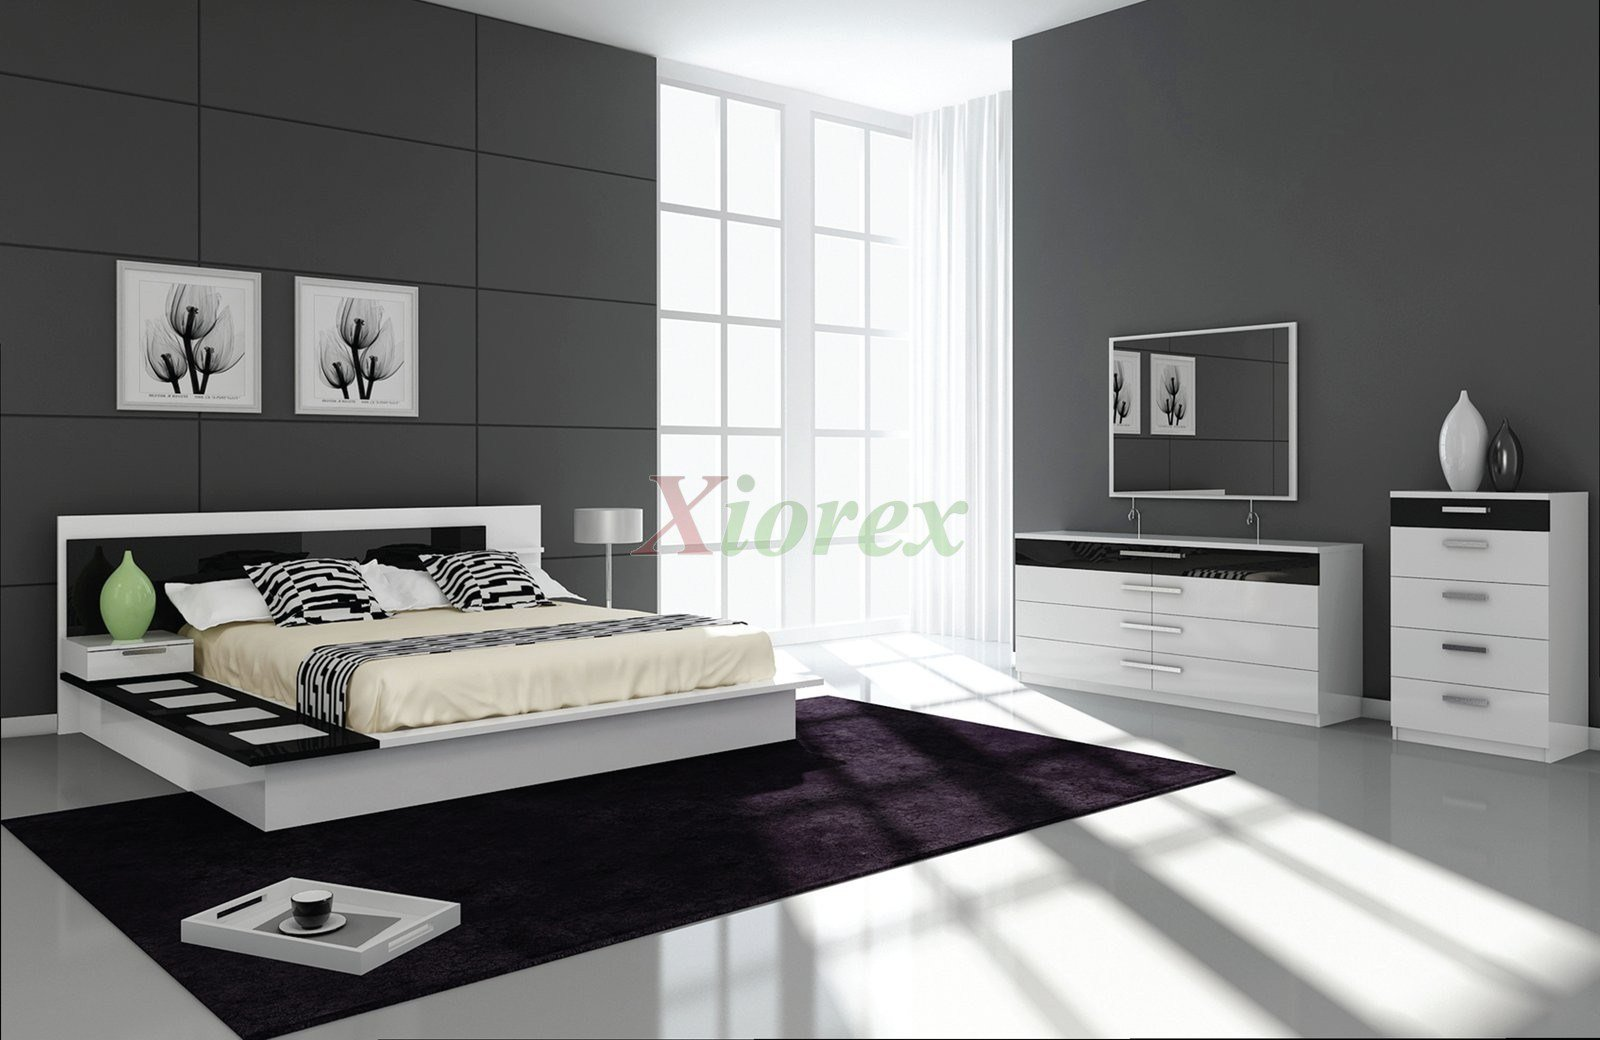 Best Draco Black And White Contemporary Bedroom Furniture Sets With Pictures